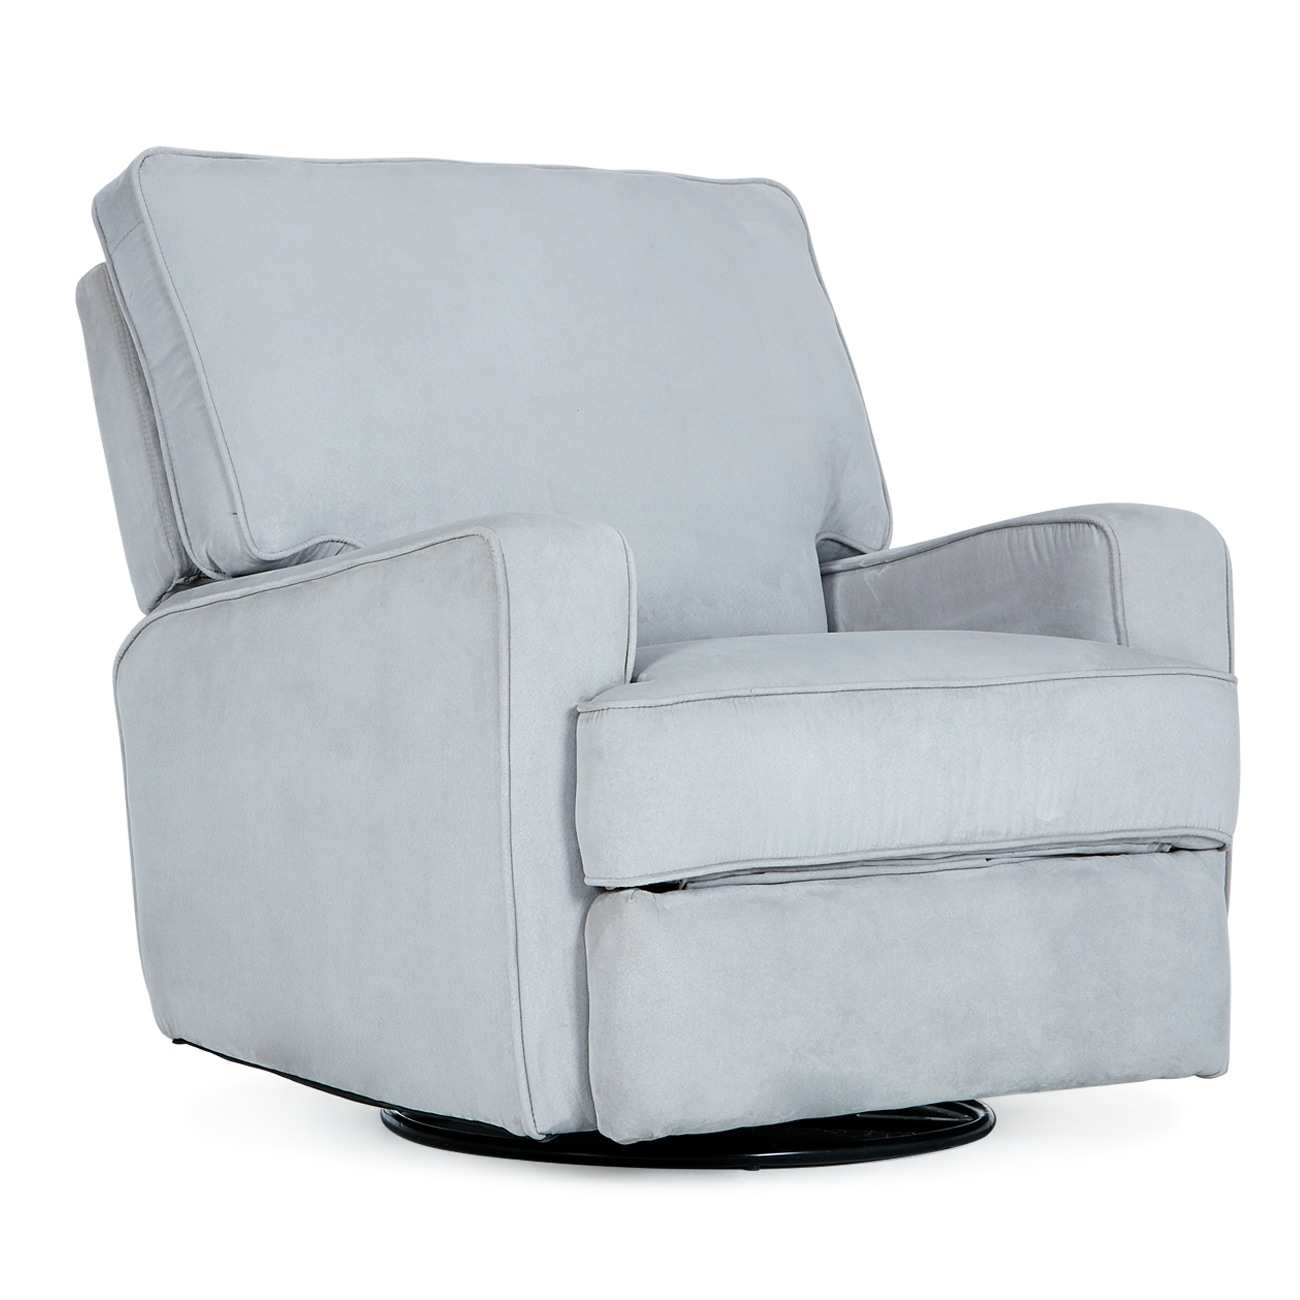 Shop Belleze Swivel Glider Recliner Padded Backrest with Extra ...